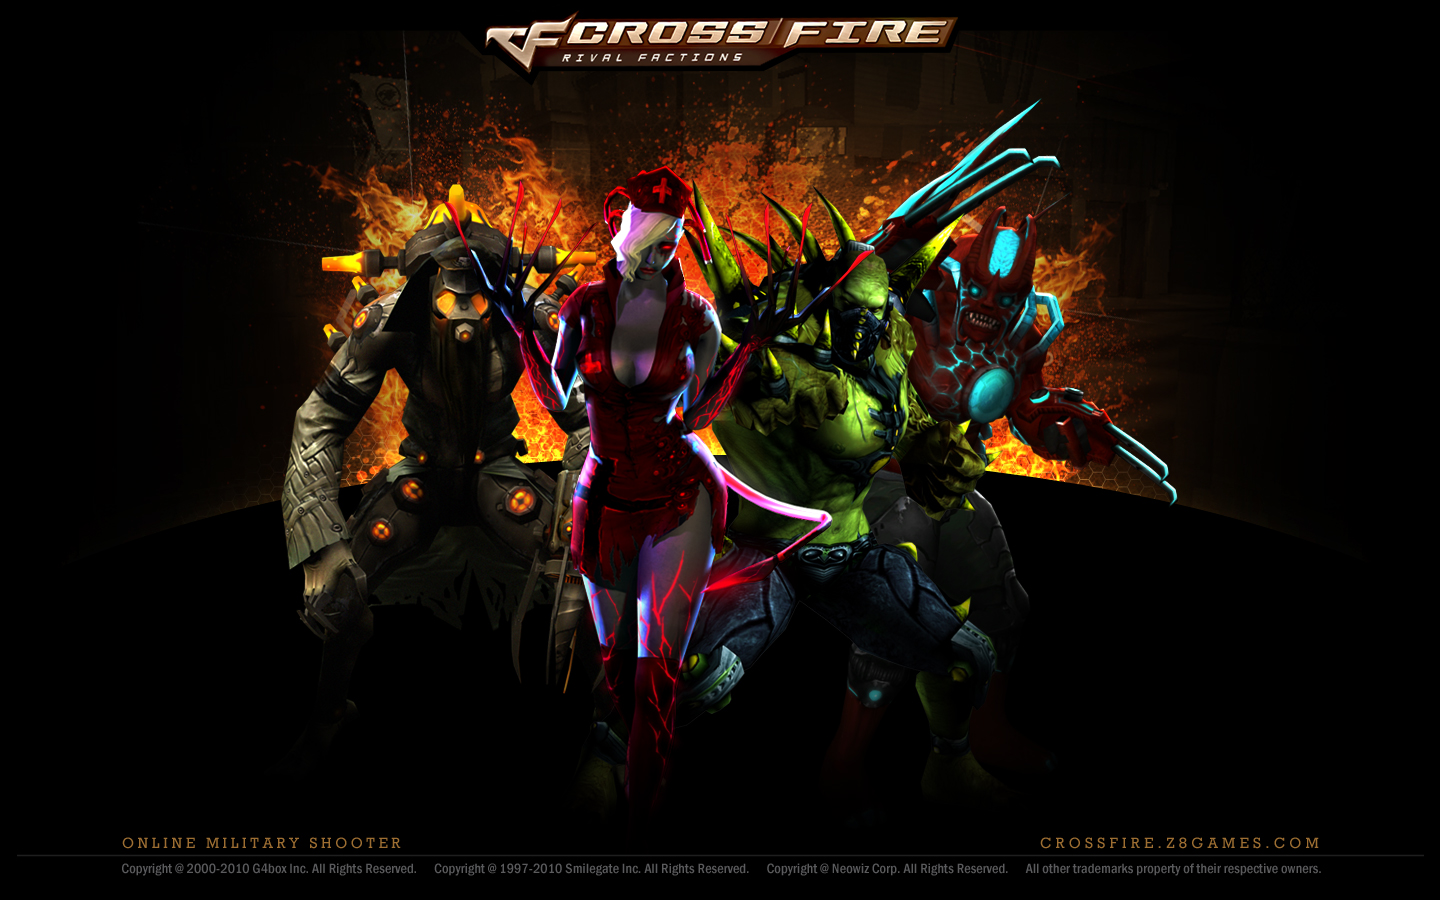 wallpaper crossfire collection 2011 - photo #14